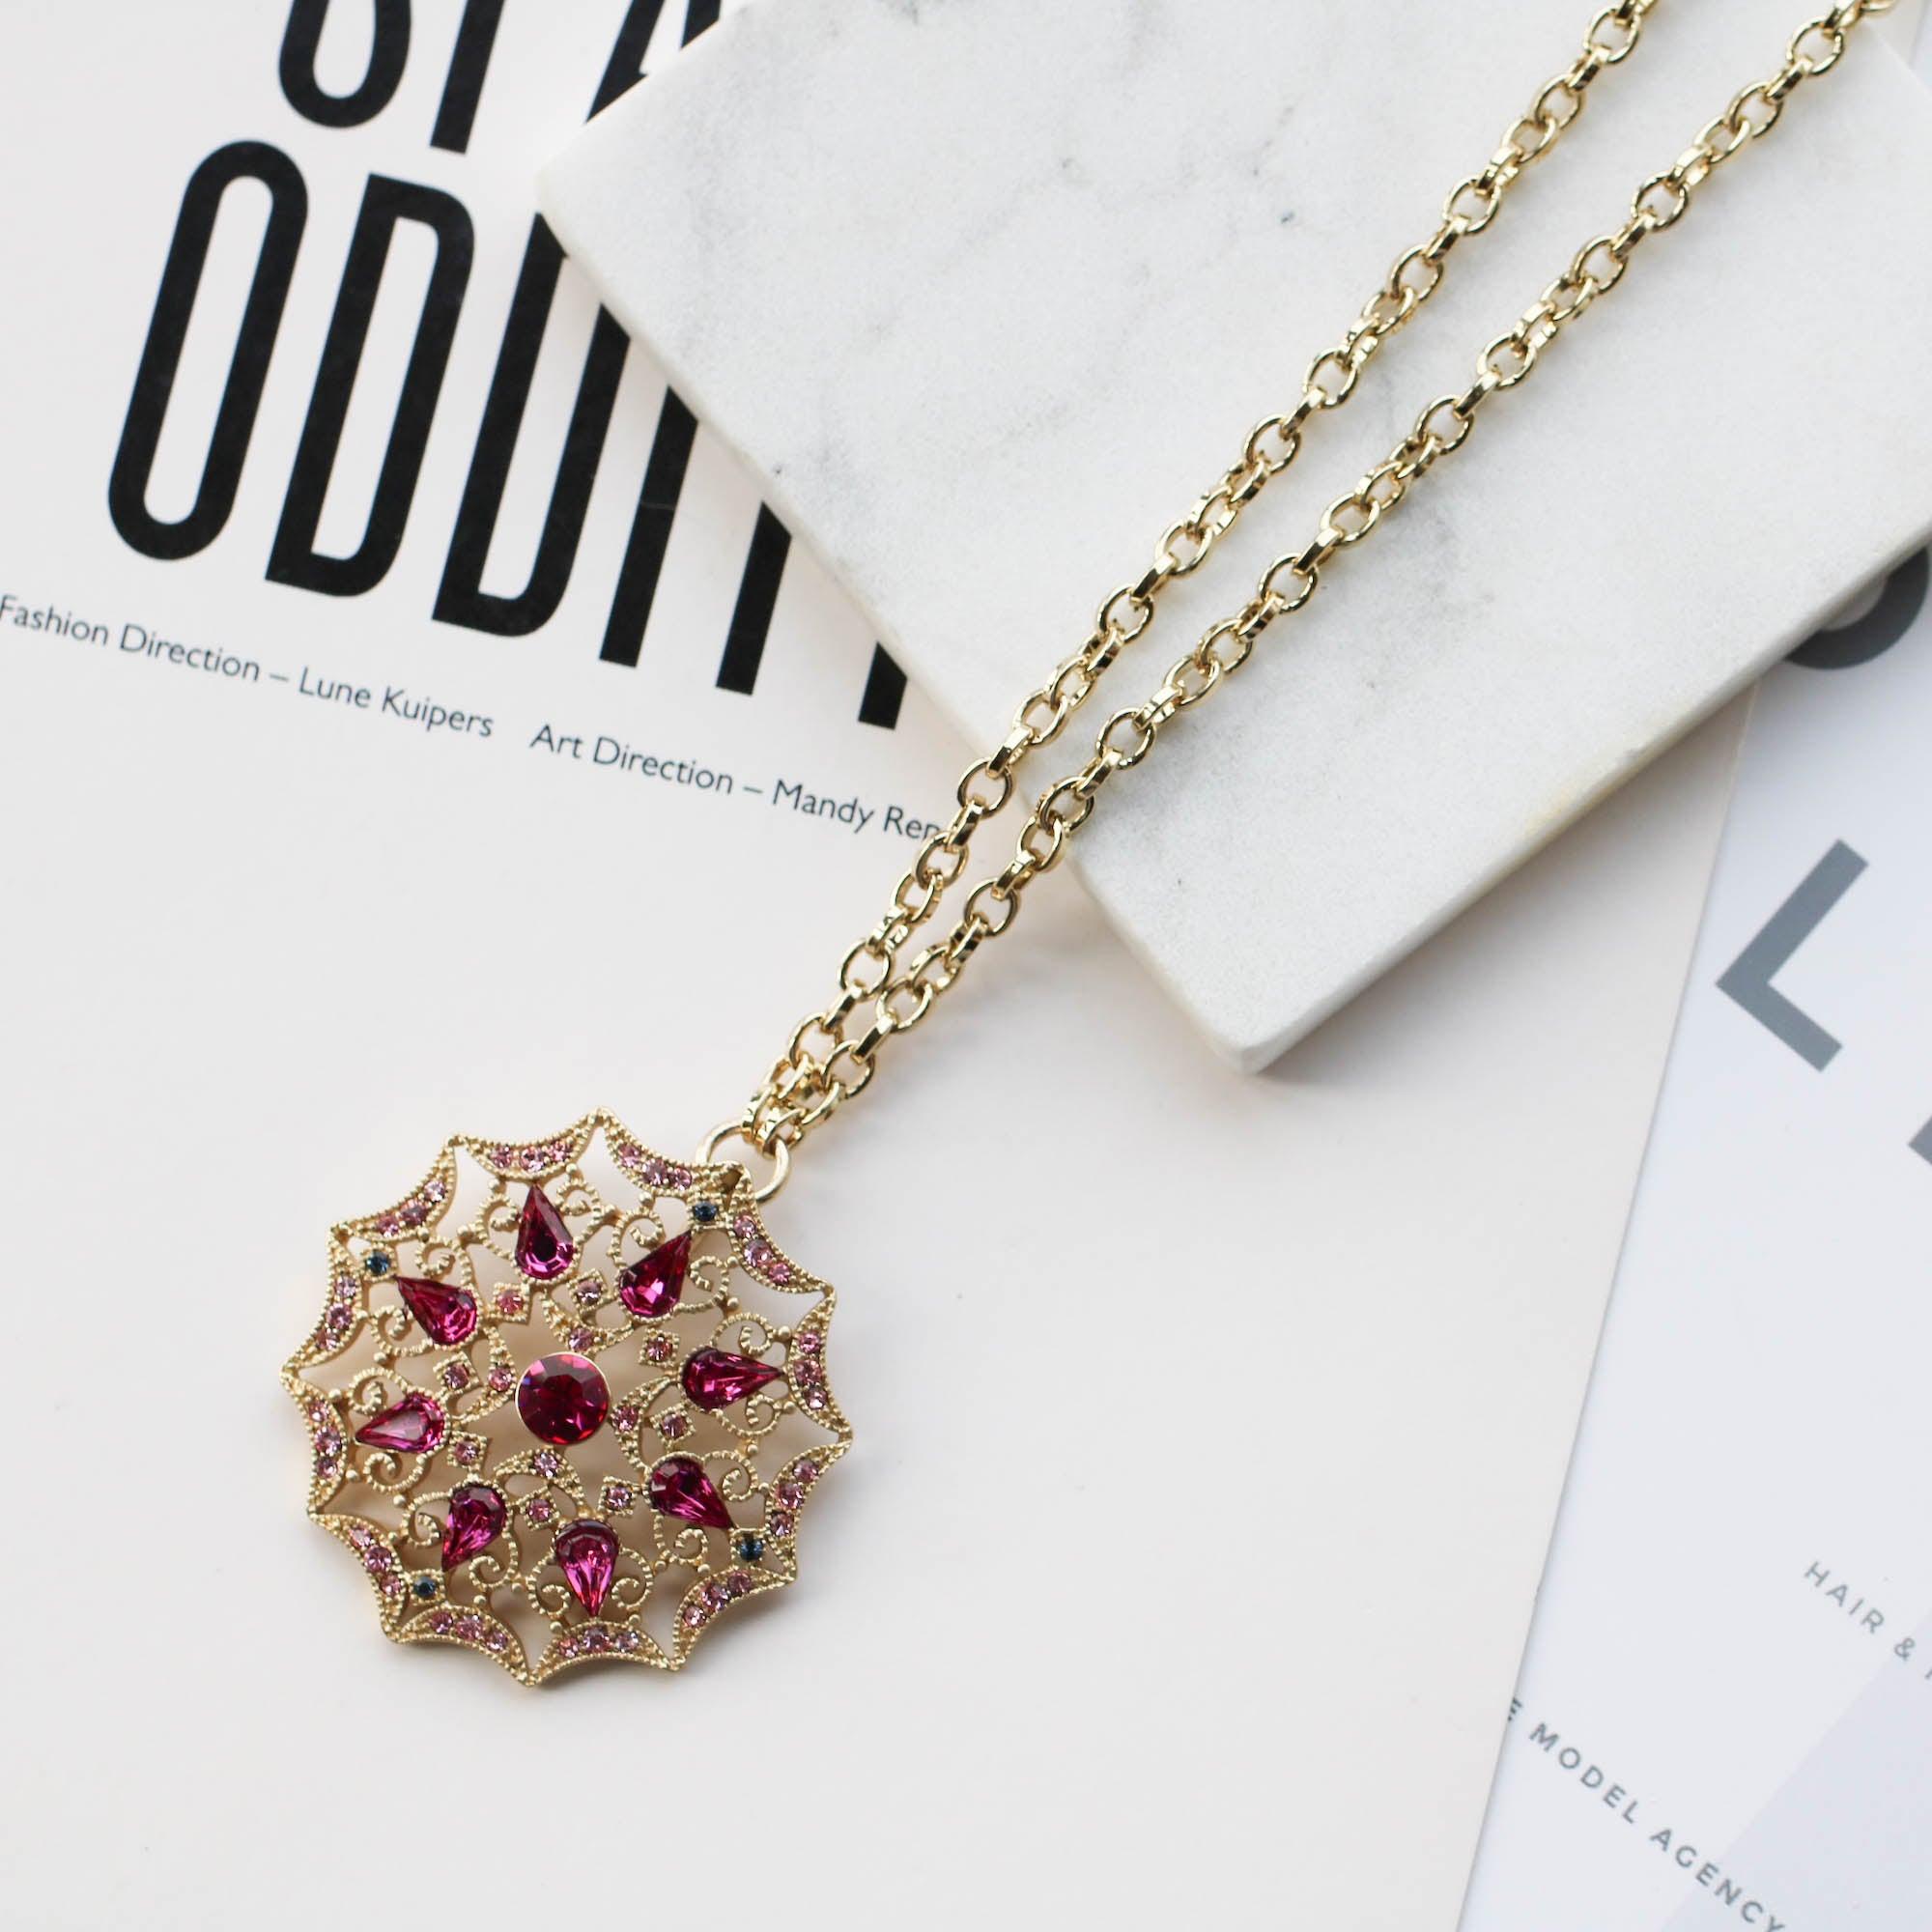 Anne klein gorgeous red crystal pendant necklace mushroom89 anne klein gorgeous red crystal pendant necklace aloadofball Gallery